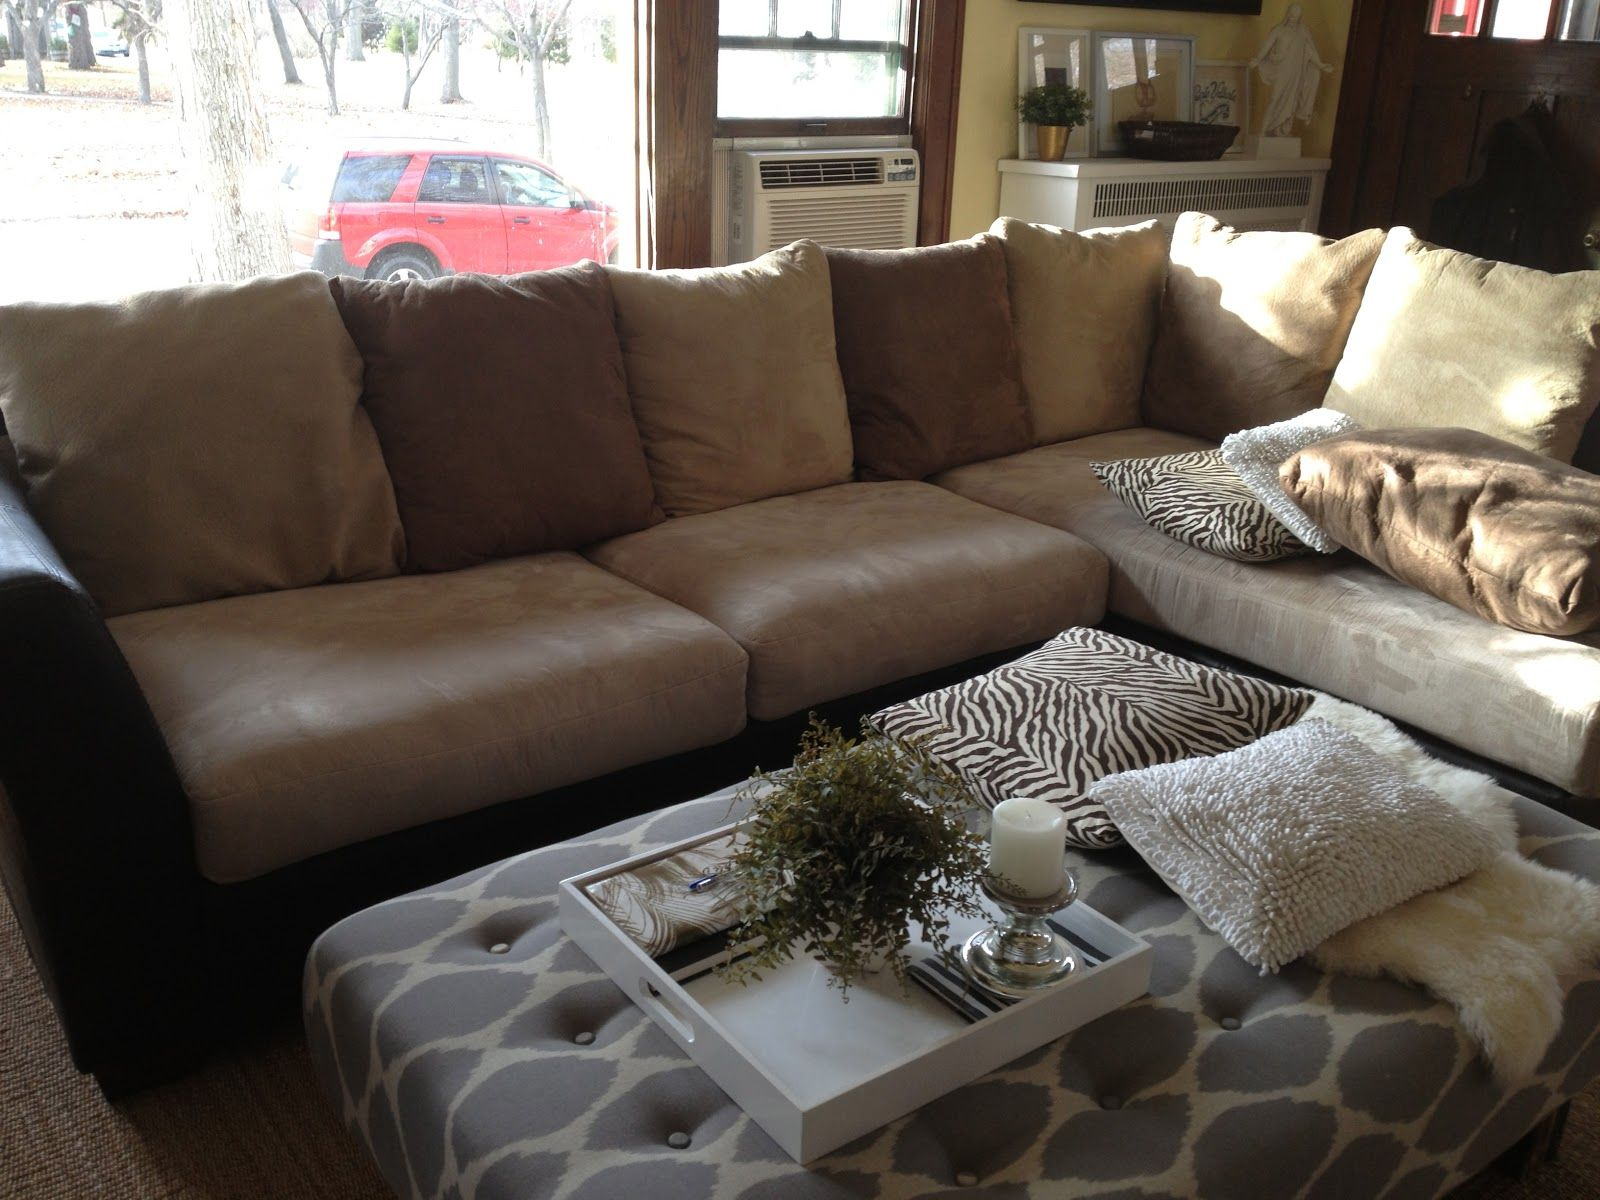 Pin By Sofacouchs On Sofas Couches Large Sofa Pillows